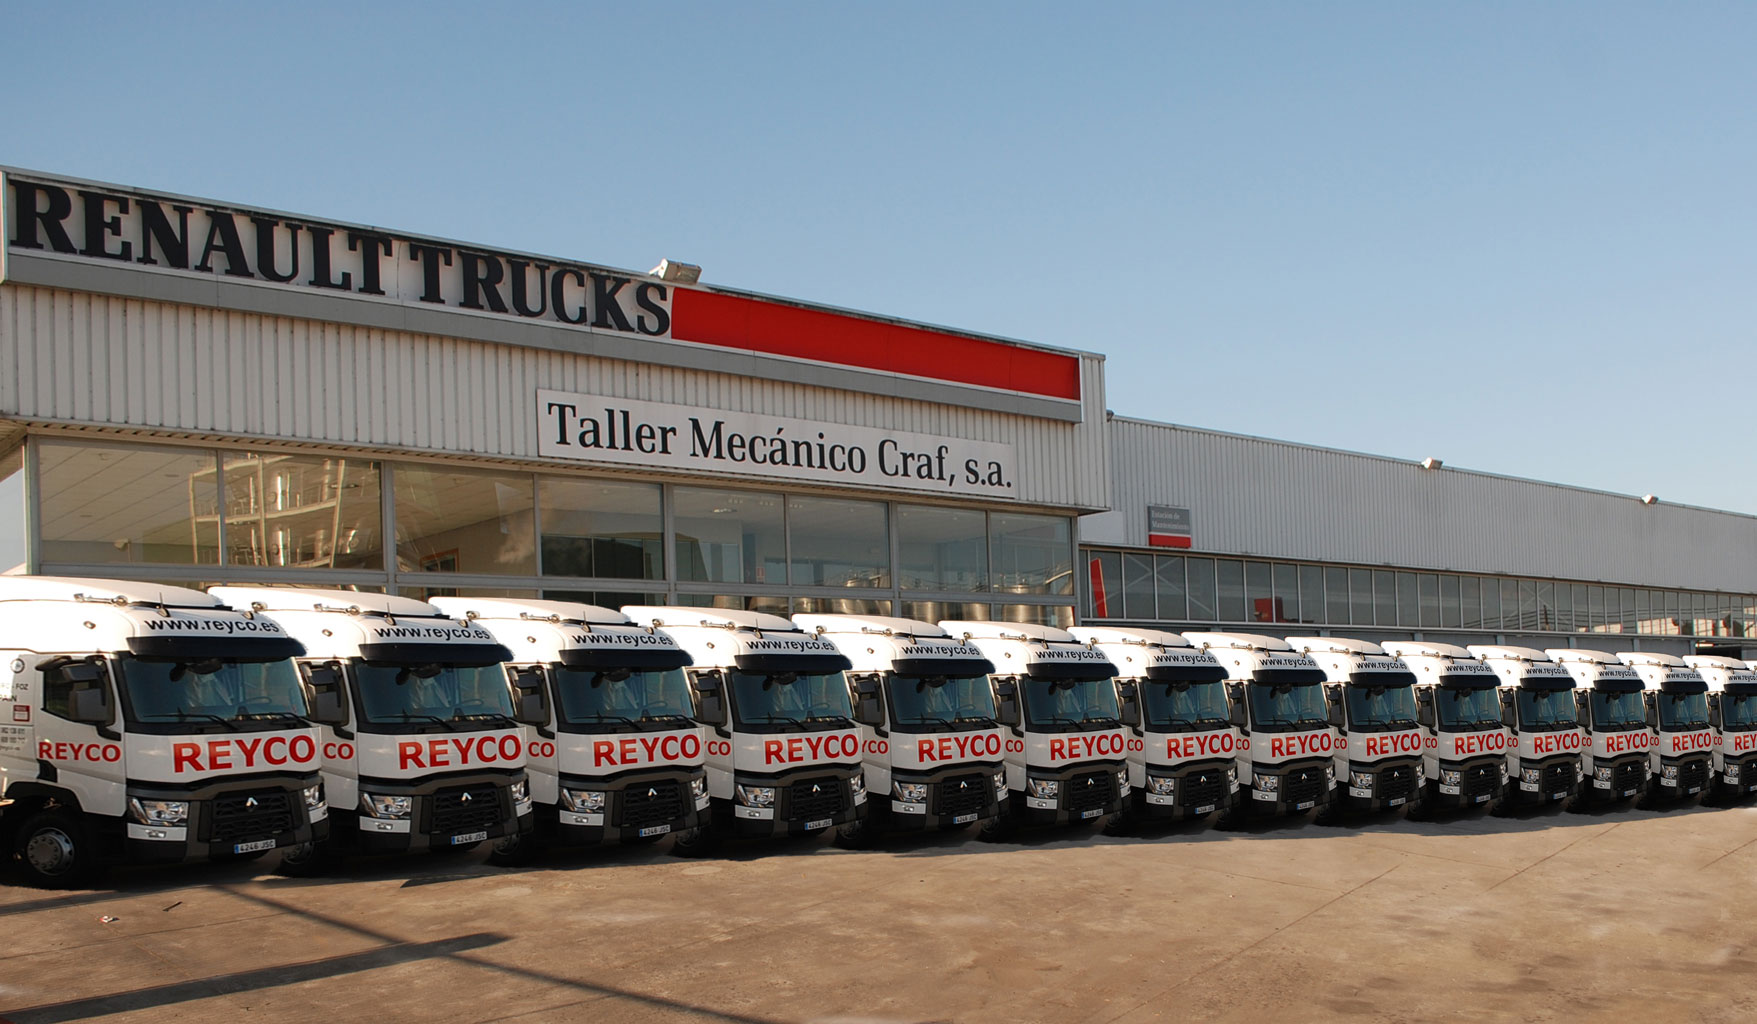 Reyco adquiere 20 Renault Trucks Gama T